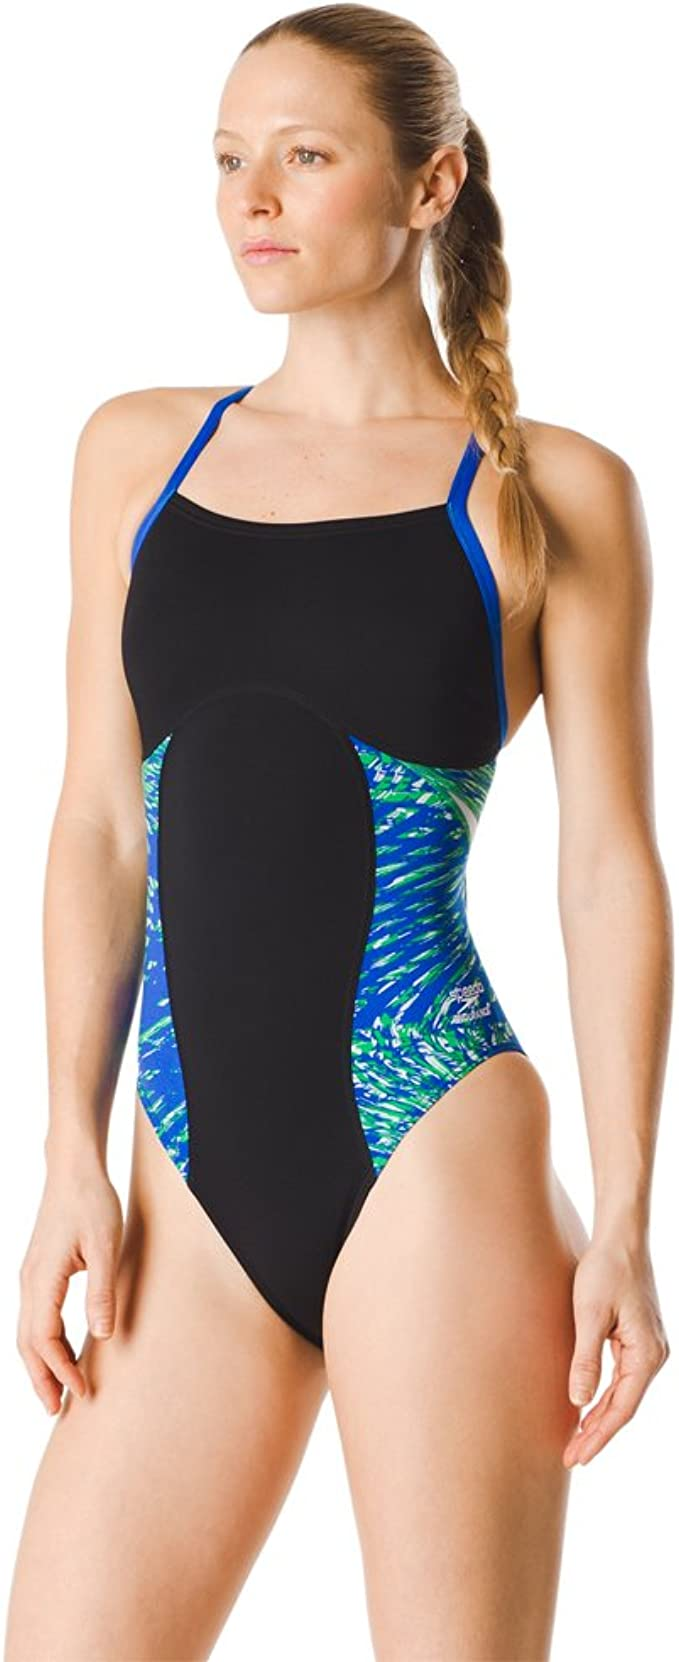 Amazon.com: Speedo Flow Force Splice Flyback - Traje de baño ...